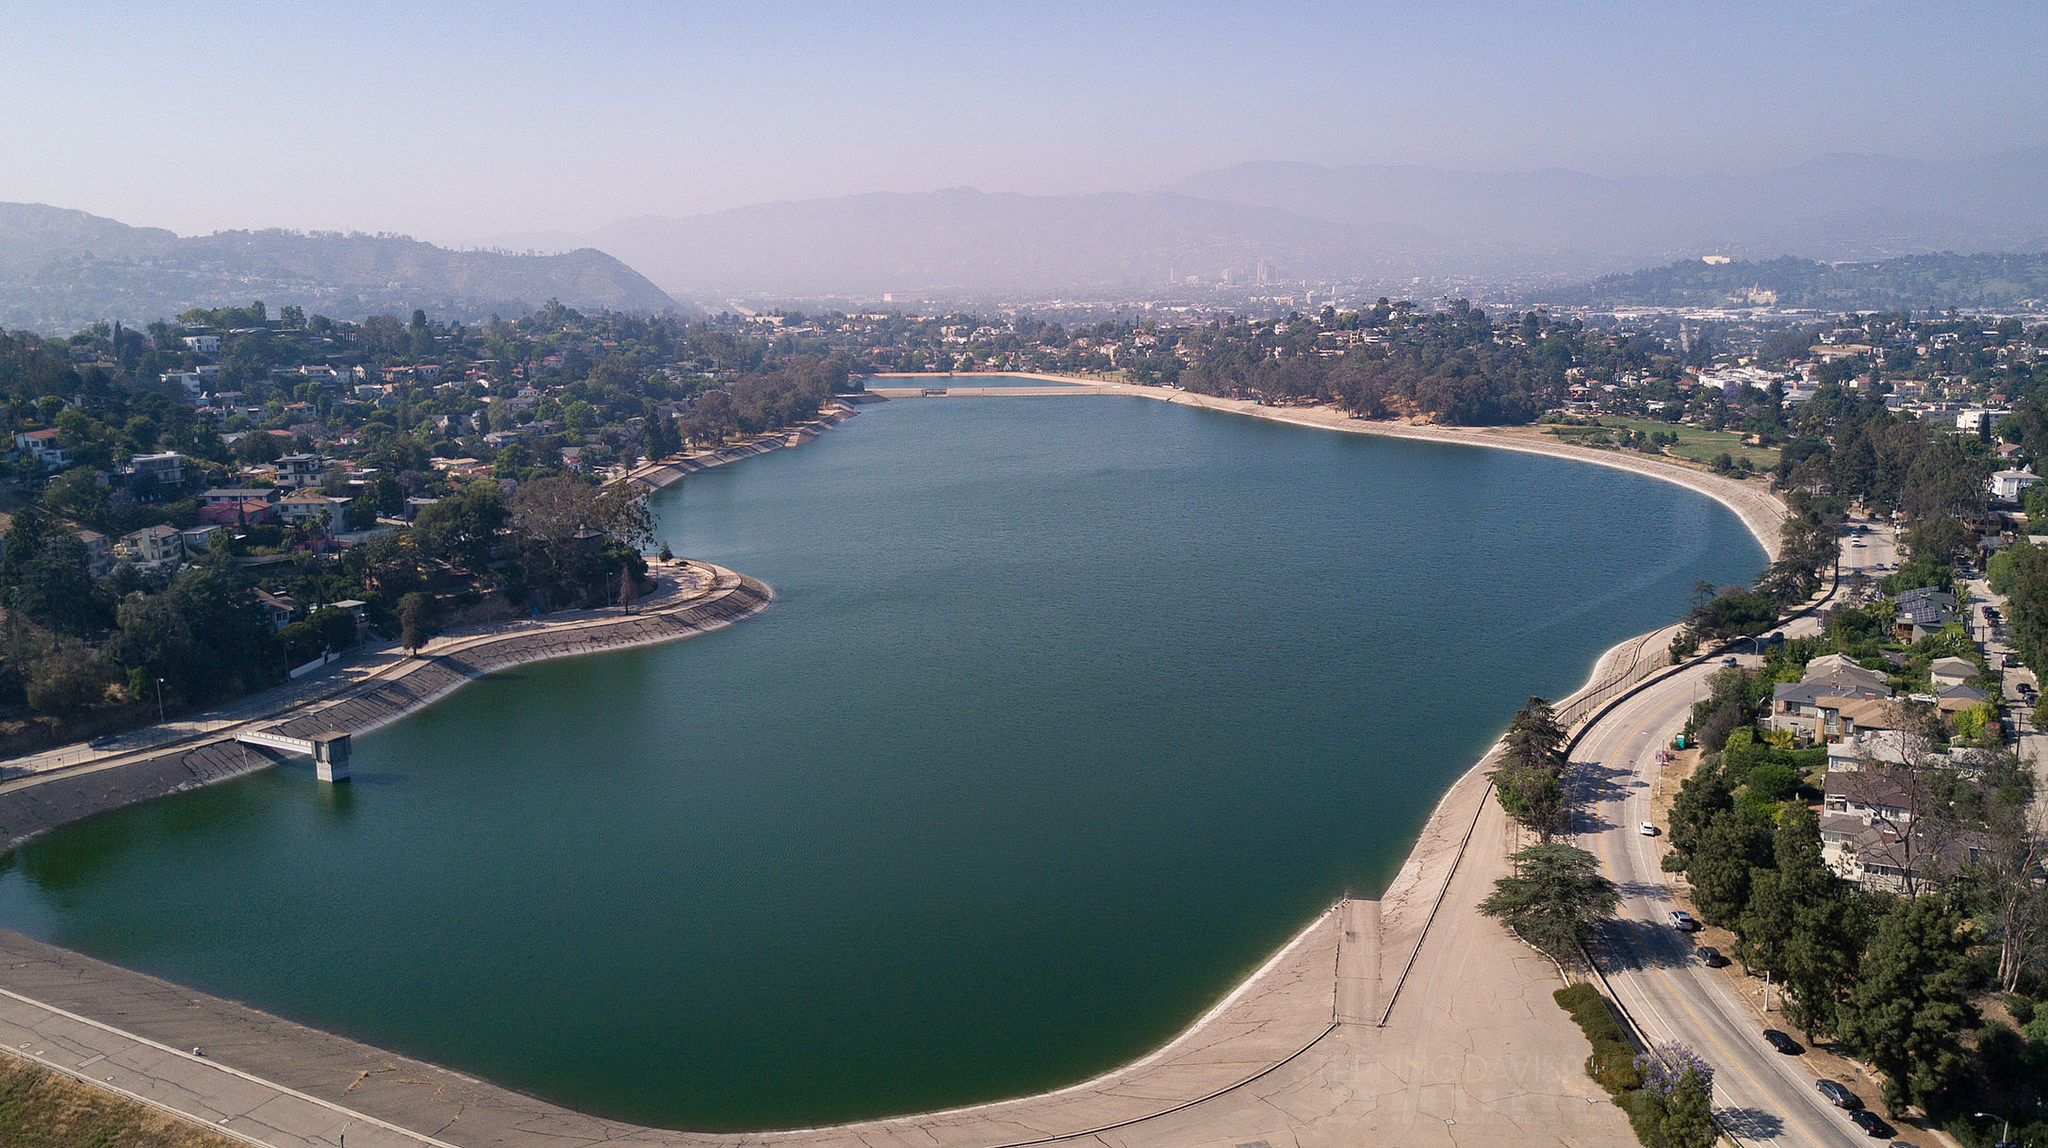 Aerial view of Silver Lake Reservoir